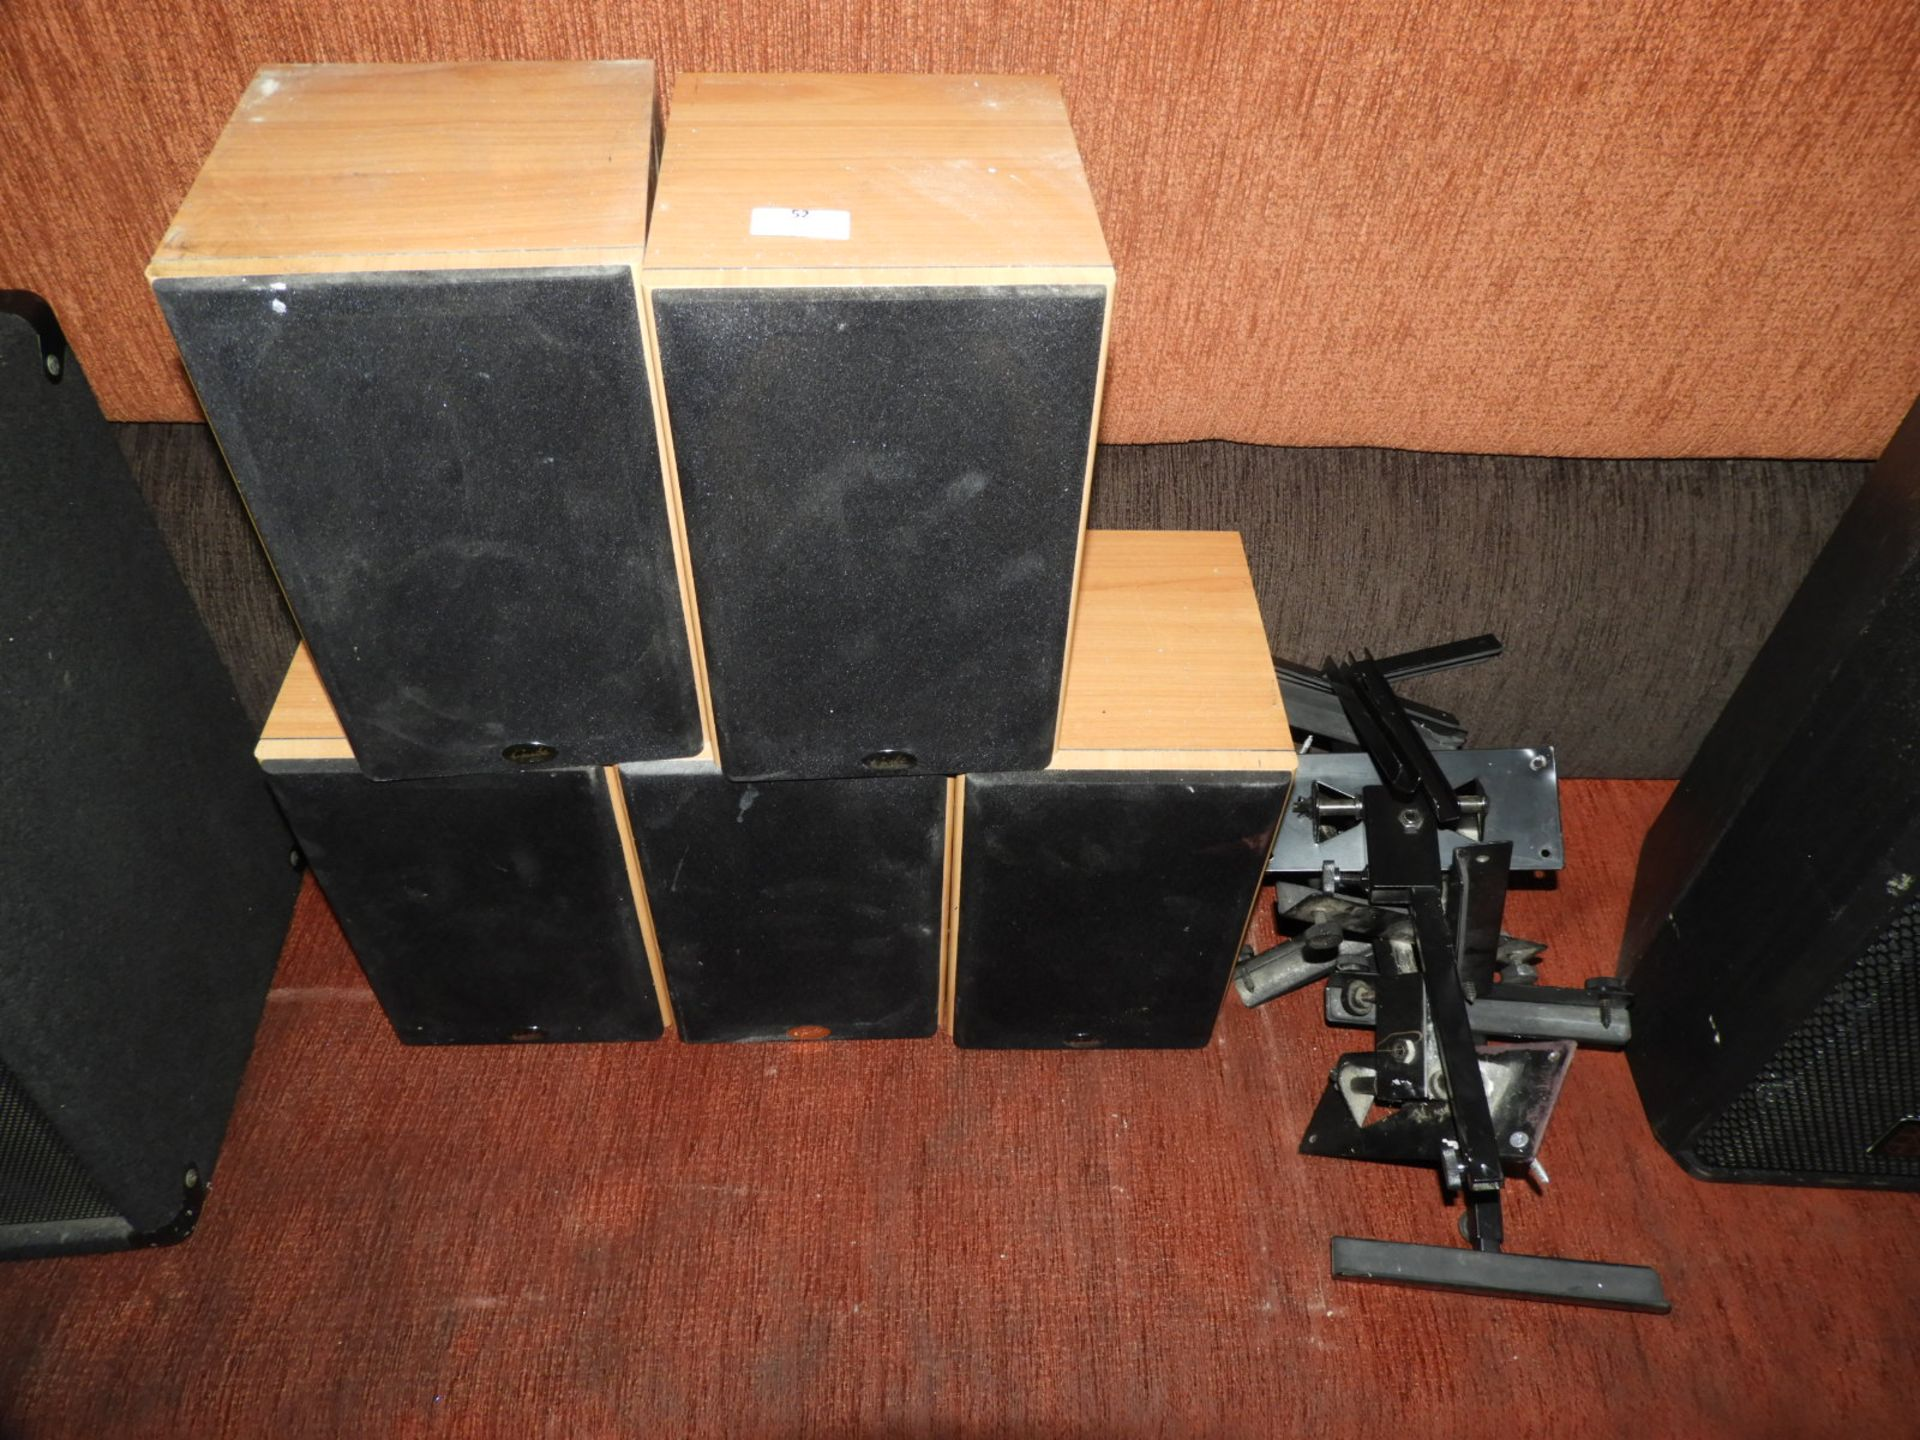 Lot 52 - *Five Gale Gold Monitor Speakers with Brackets